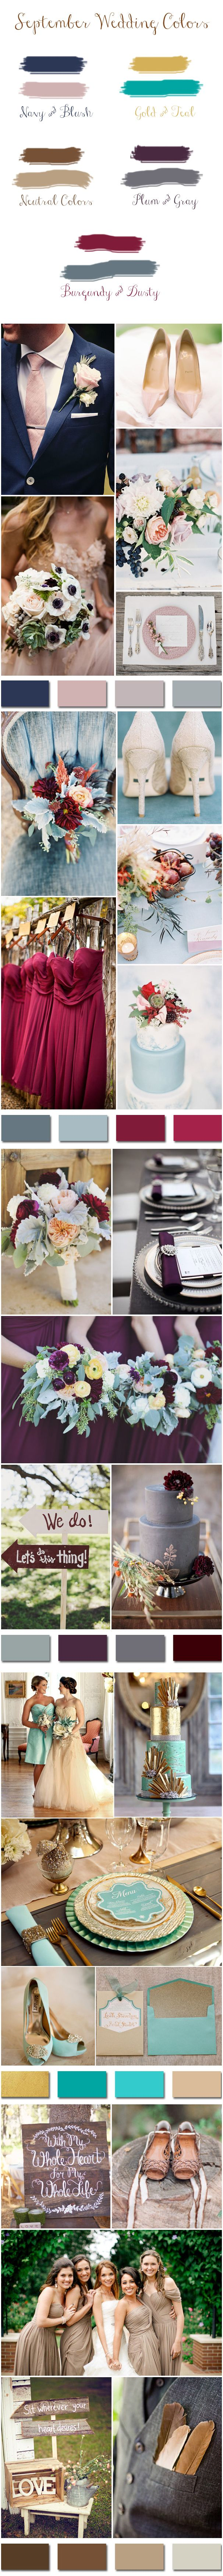 Top 5 Fall Wedding Colors for September Brides So maybe it doesn't have to be prison orange? lol